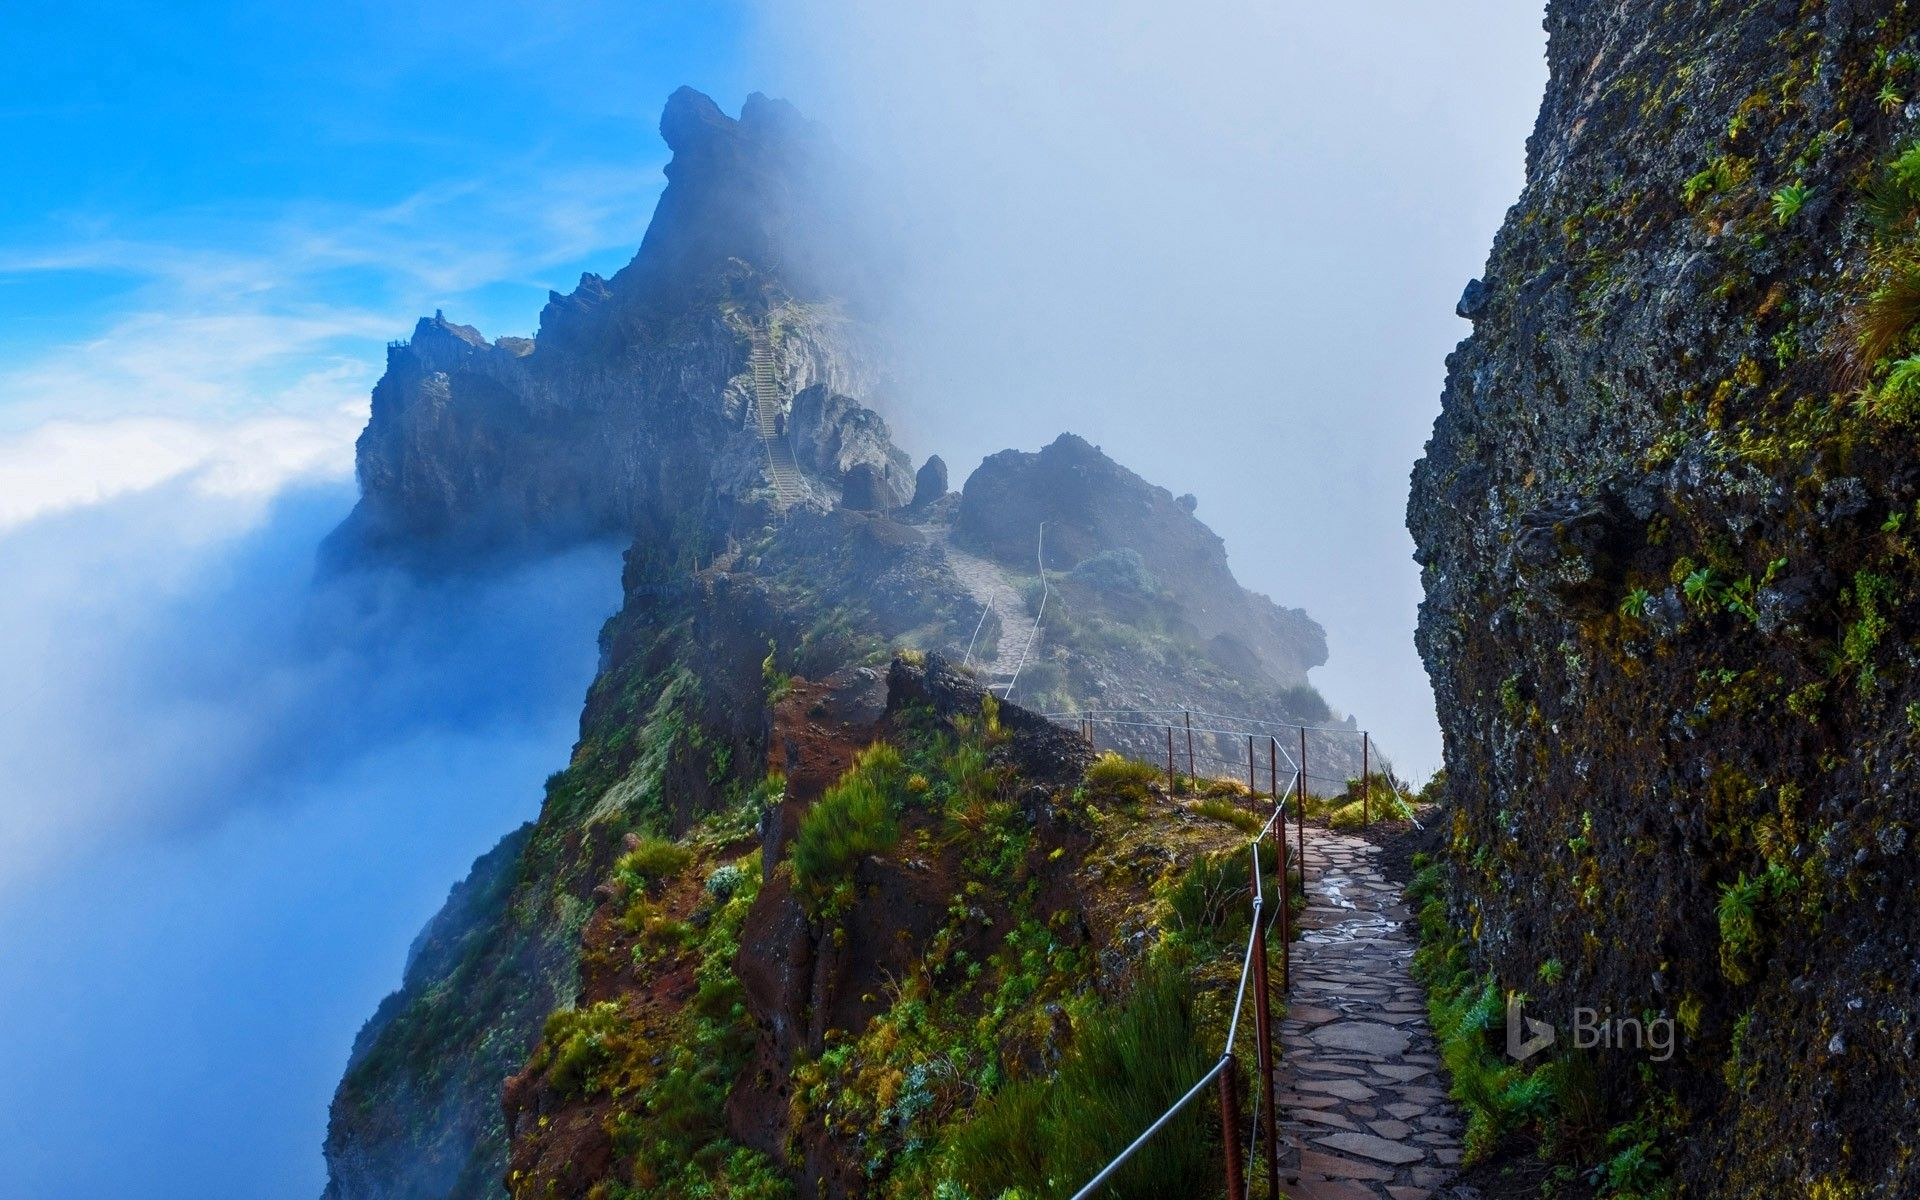 mountain trail in madeira portugal rusinka 02 pinterest mountain trails mountains and. Black Bedroom Furniture Sets. Home Design Ideas